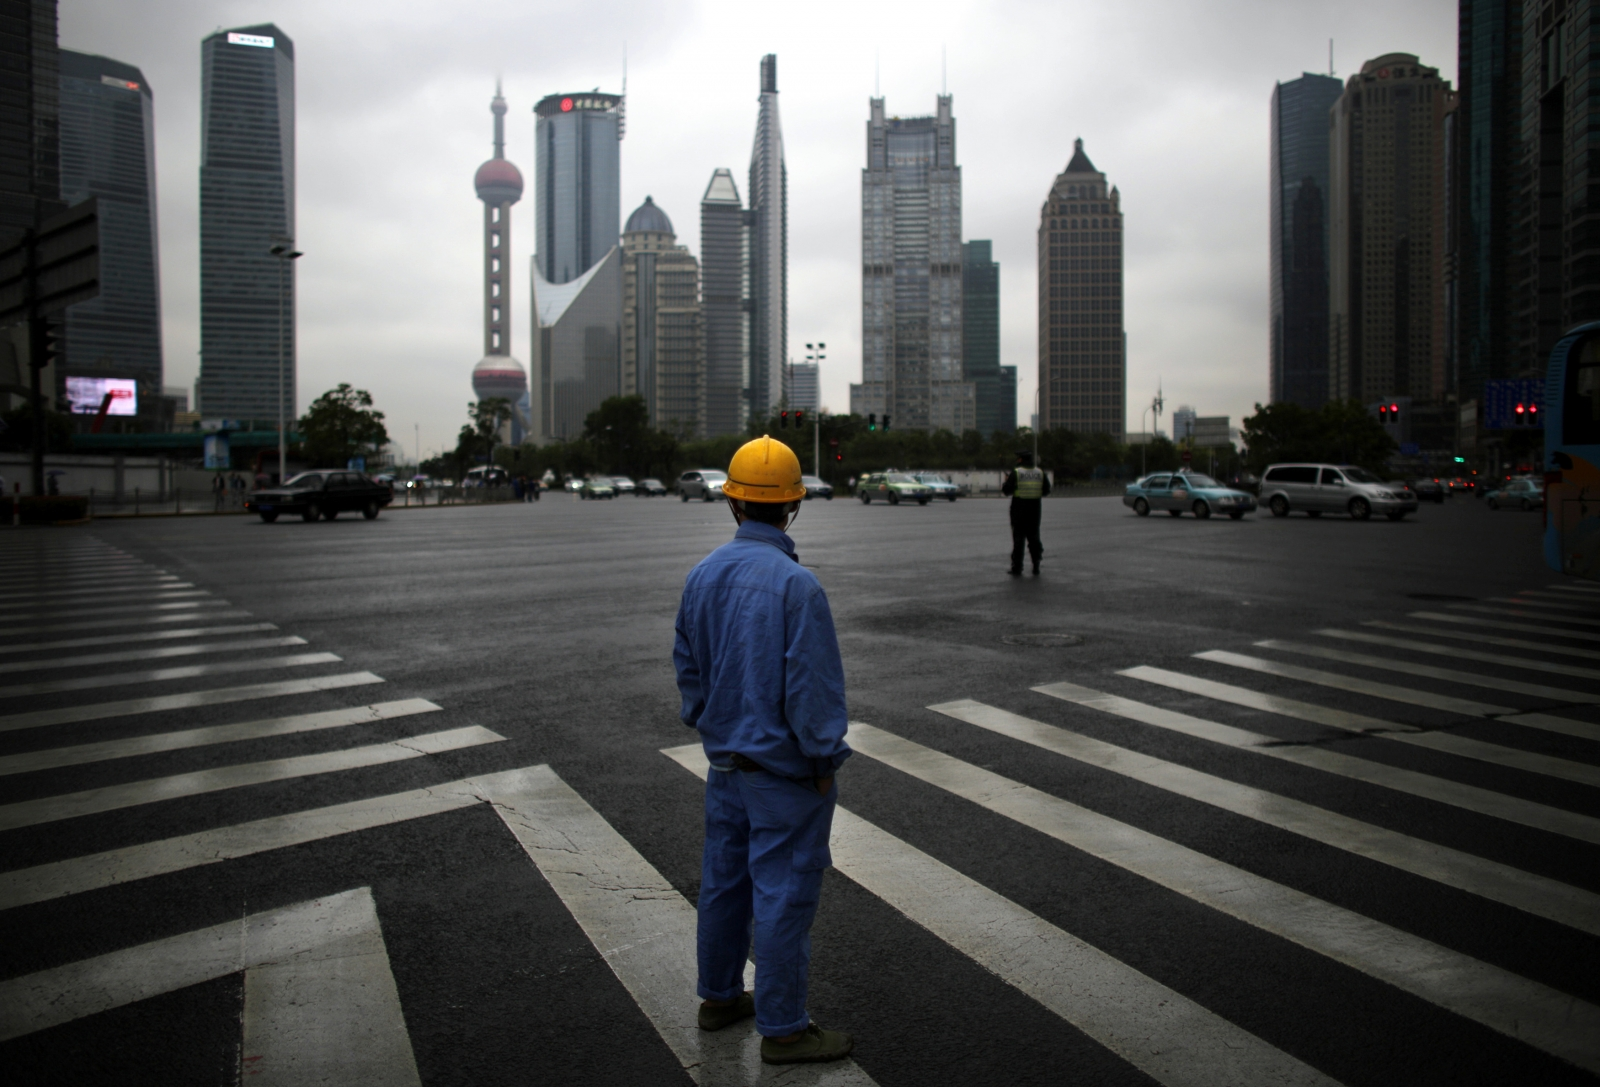 Pudong Financial District, China.